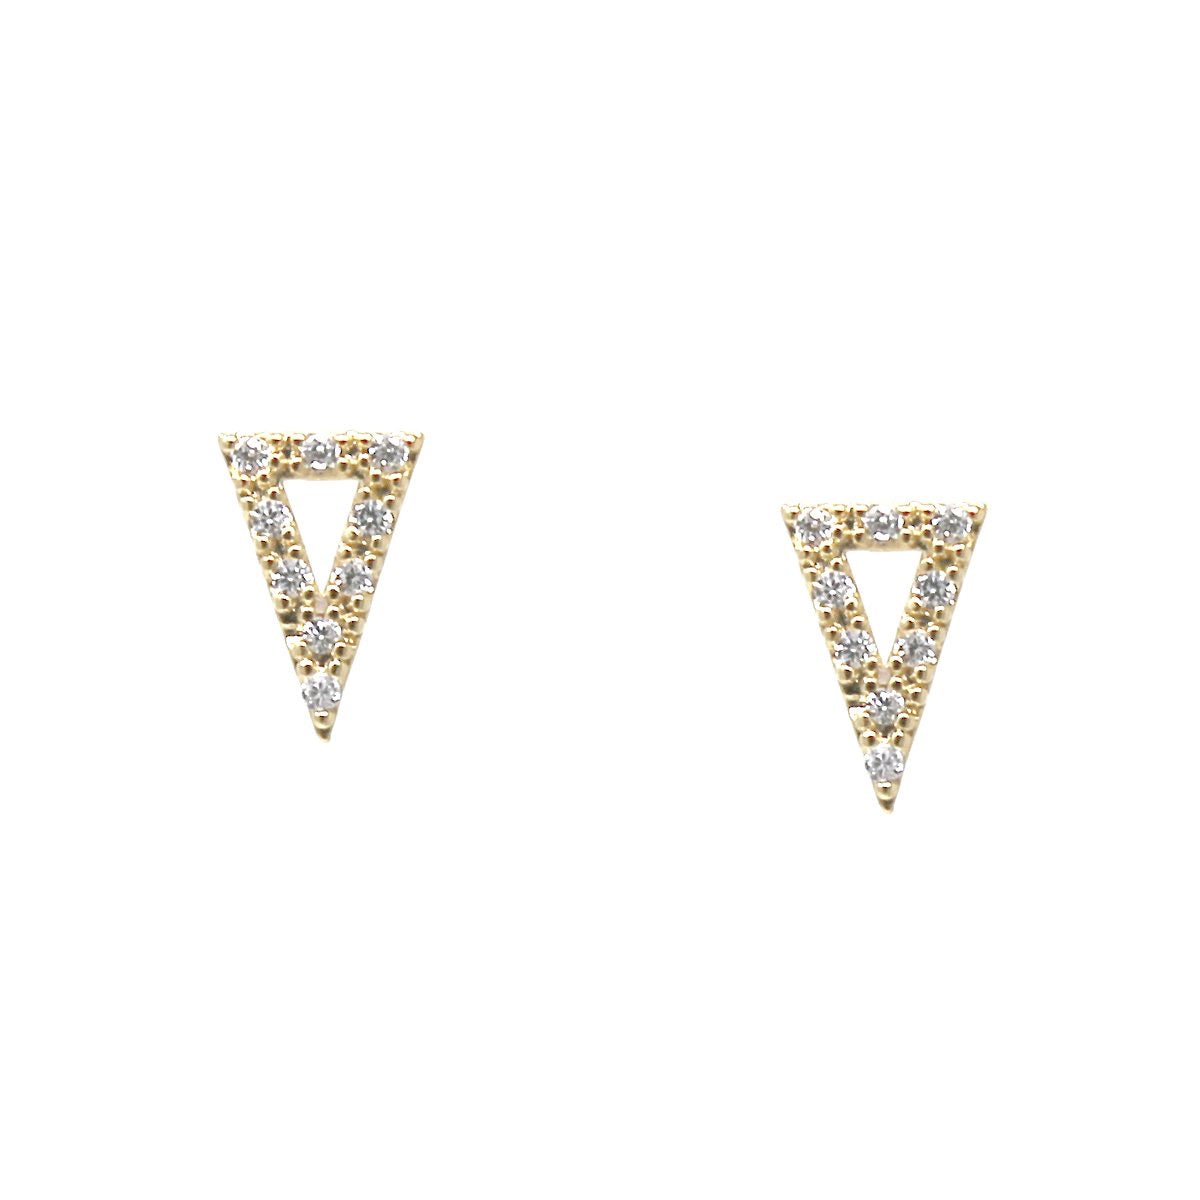 BITZ CZ Pave Triangle Stud Earrings